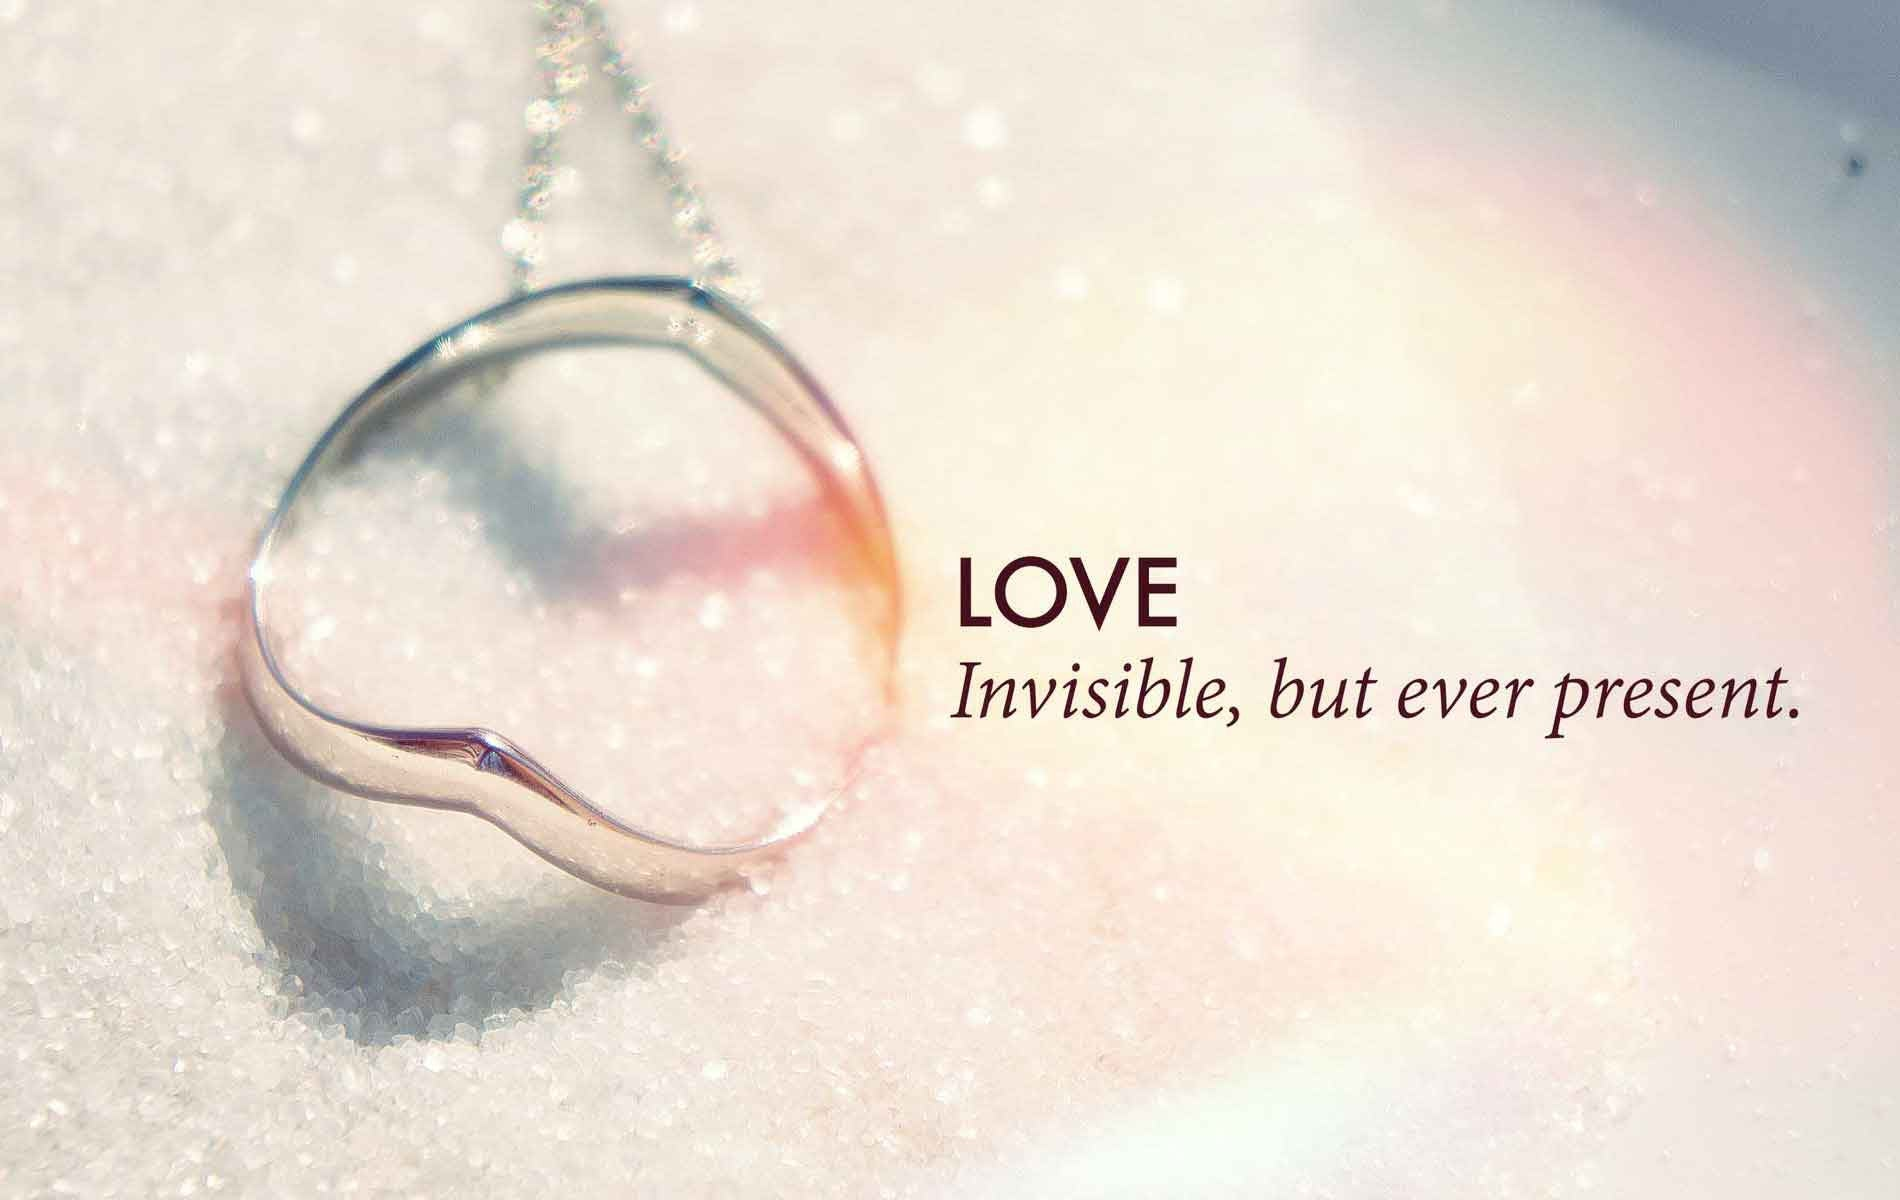 Love is invisible, but ever present.